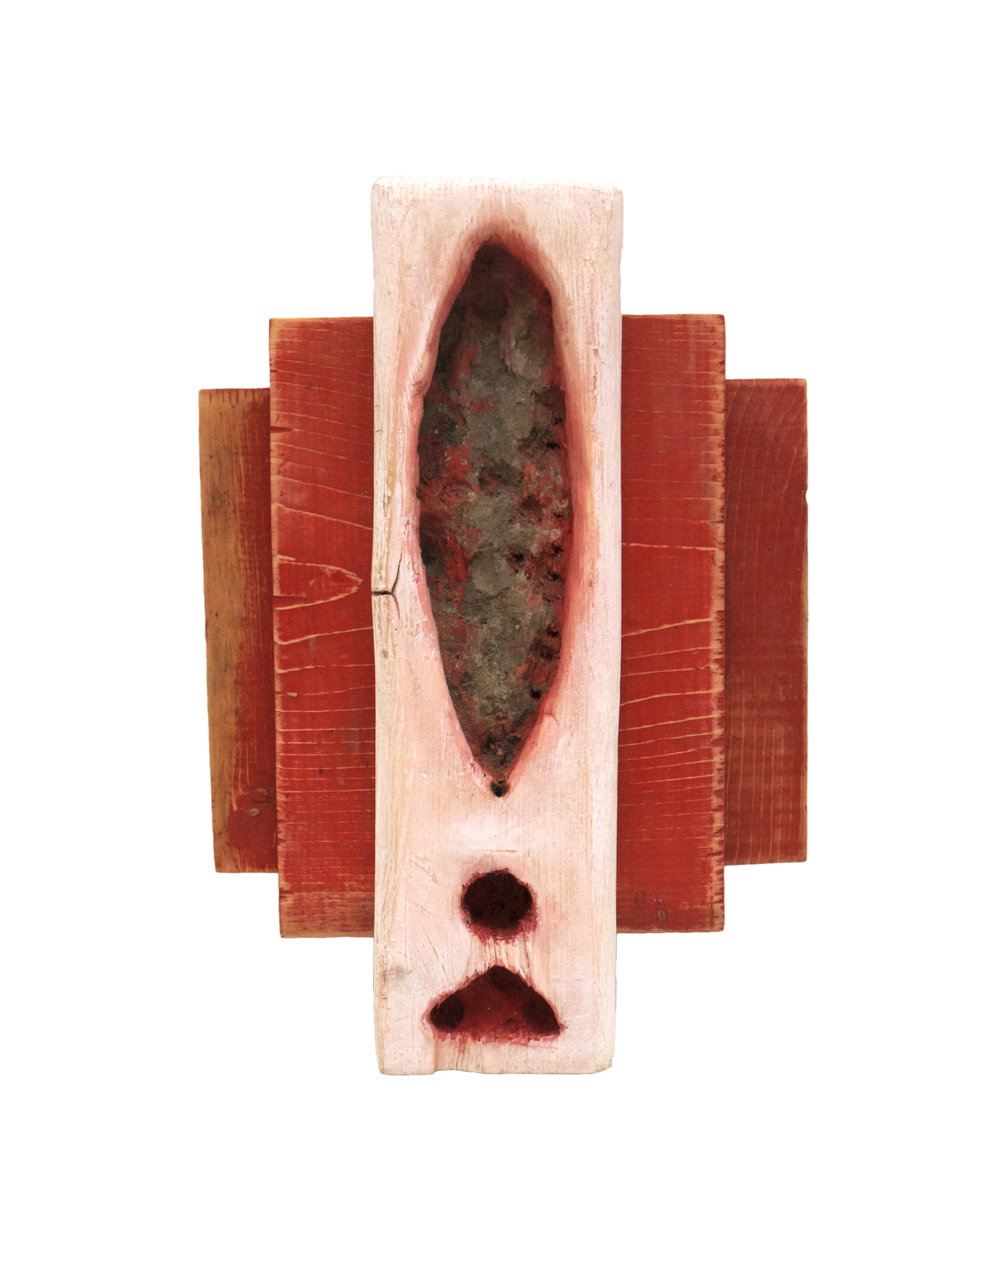 "Yonivision (Incense Holder for Ritual) , 2017 11"" x 5"" x 3"" mixed media on found wood"